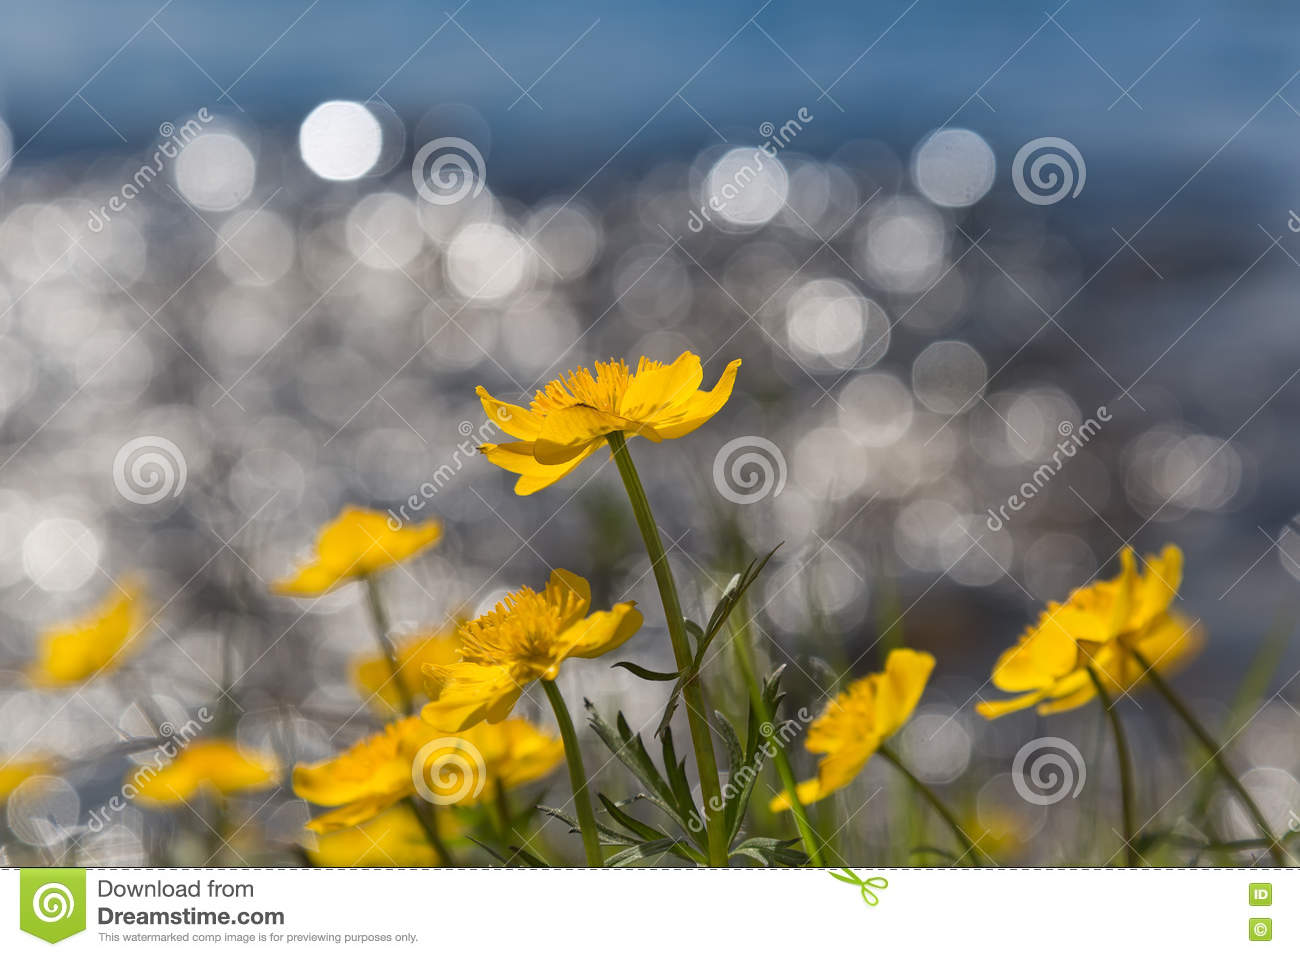 Download Le Jaune Fleurit Le Bokeh De Wiith Photo stock - Image du fond, coloré: 76087442